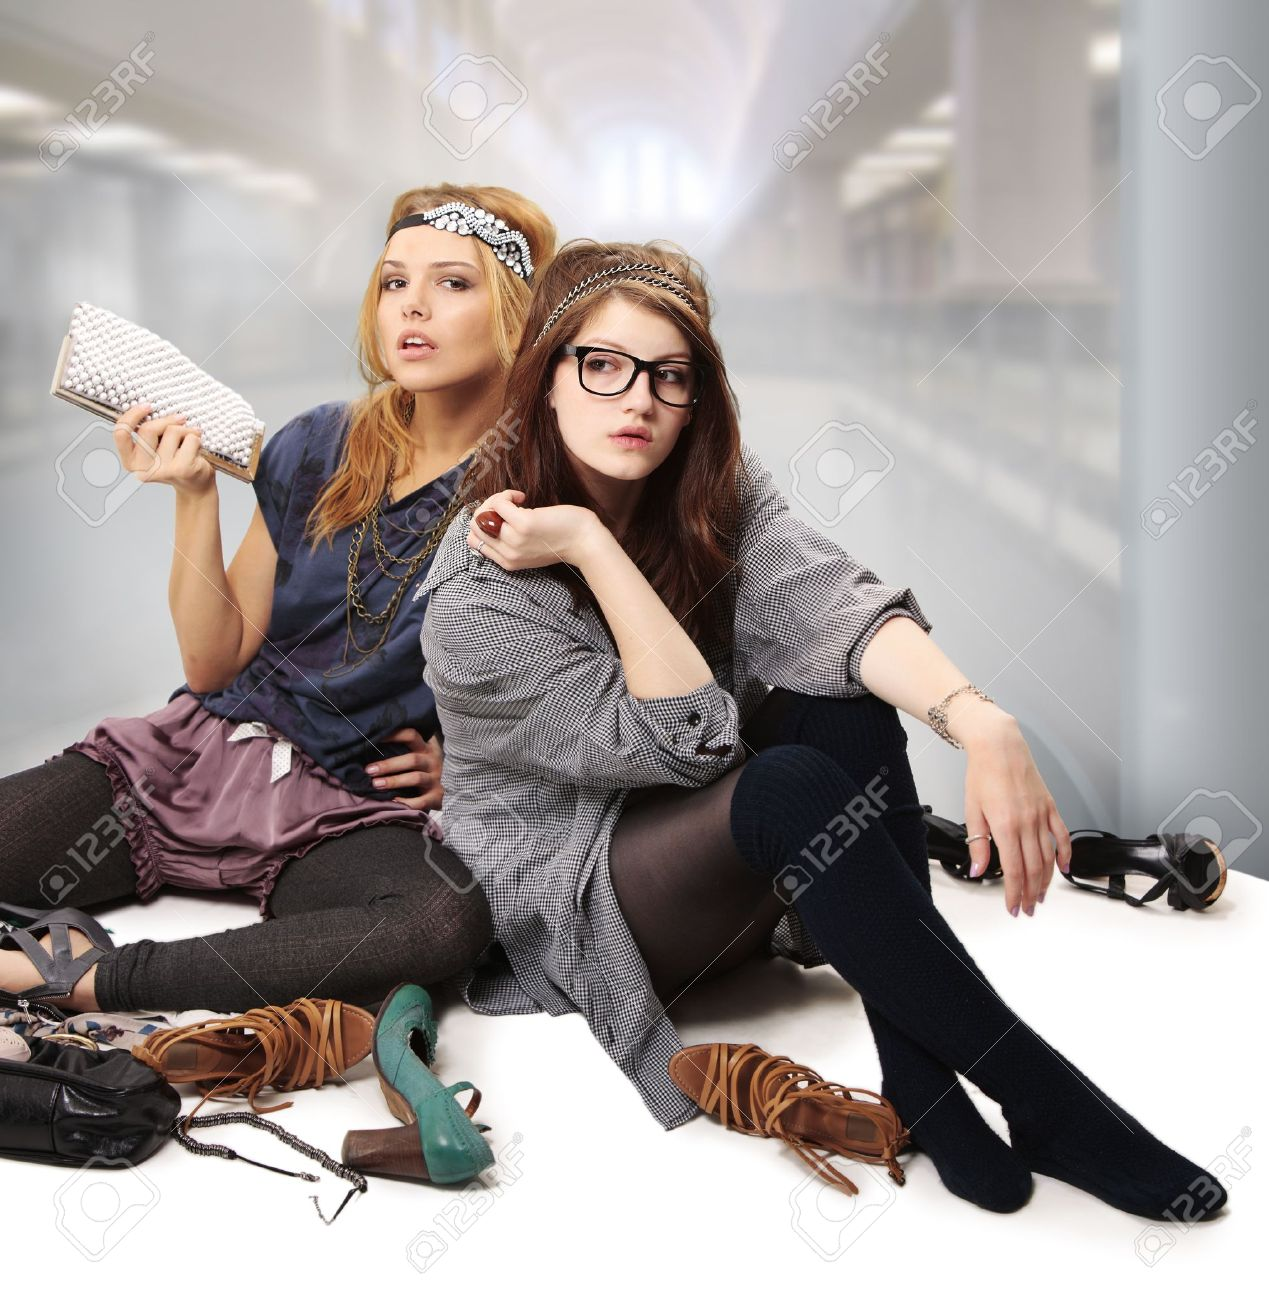 Cool teenage girls fashionista with headpiece standing on the floor surrounded by accessories, shoes and blings Stock Photo - 8852967